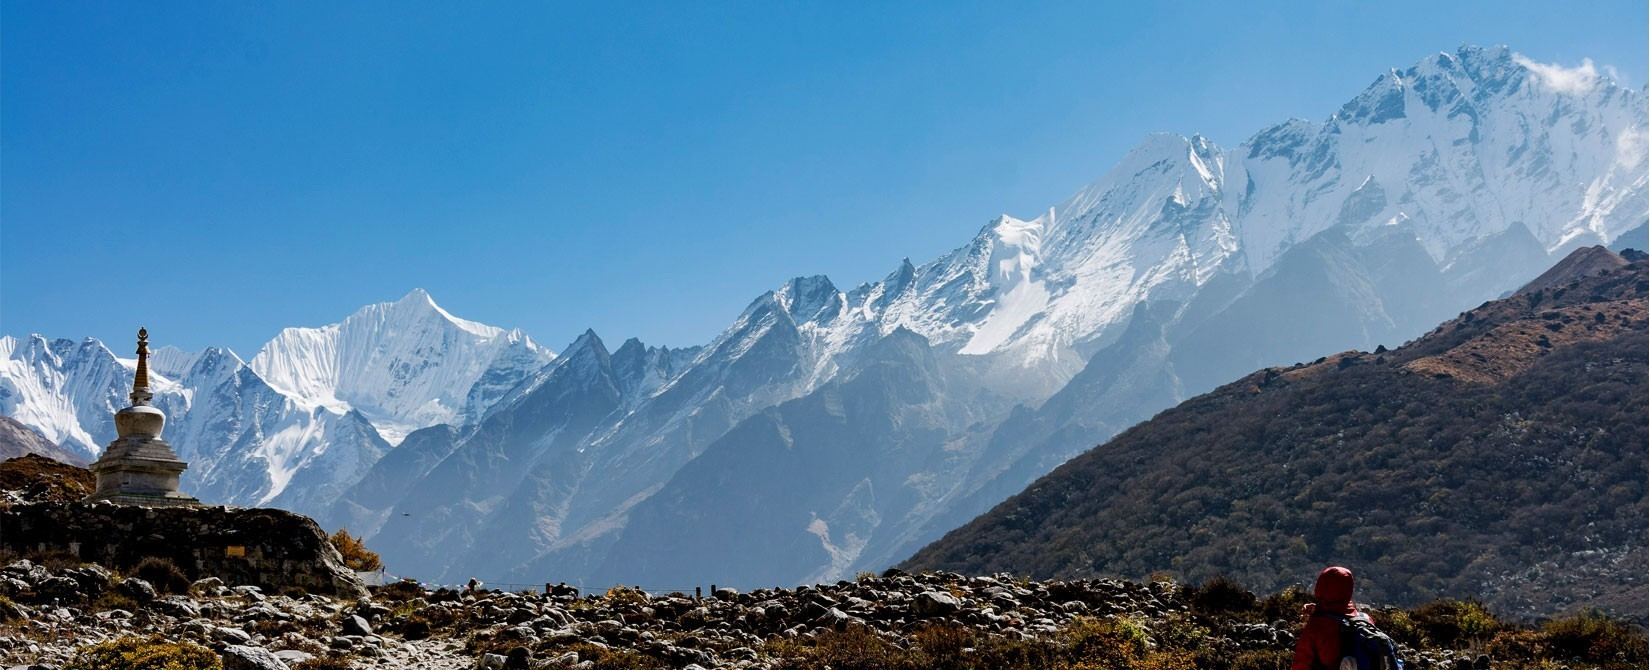 Trekking in Langtang Valley